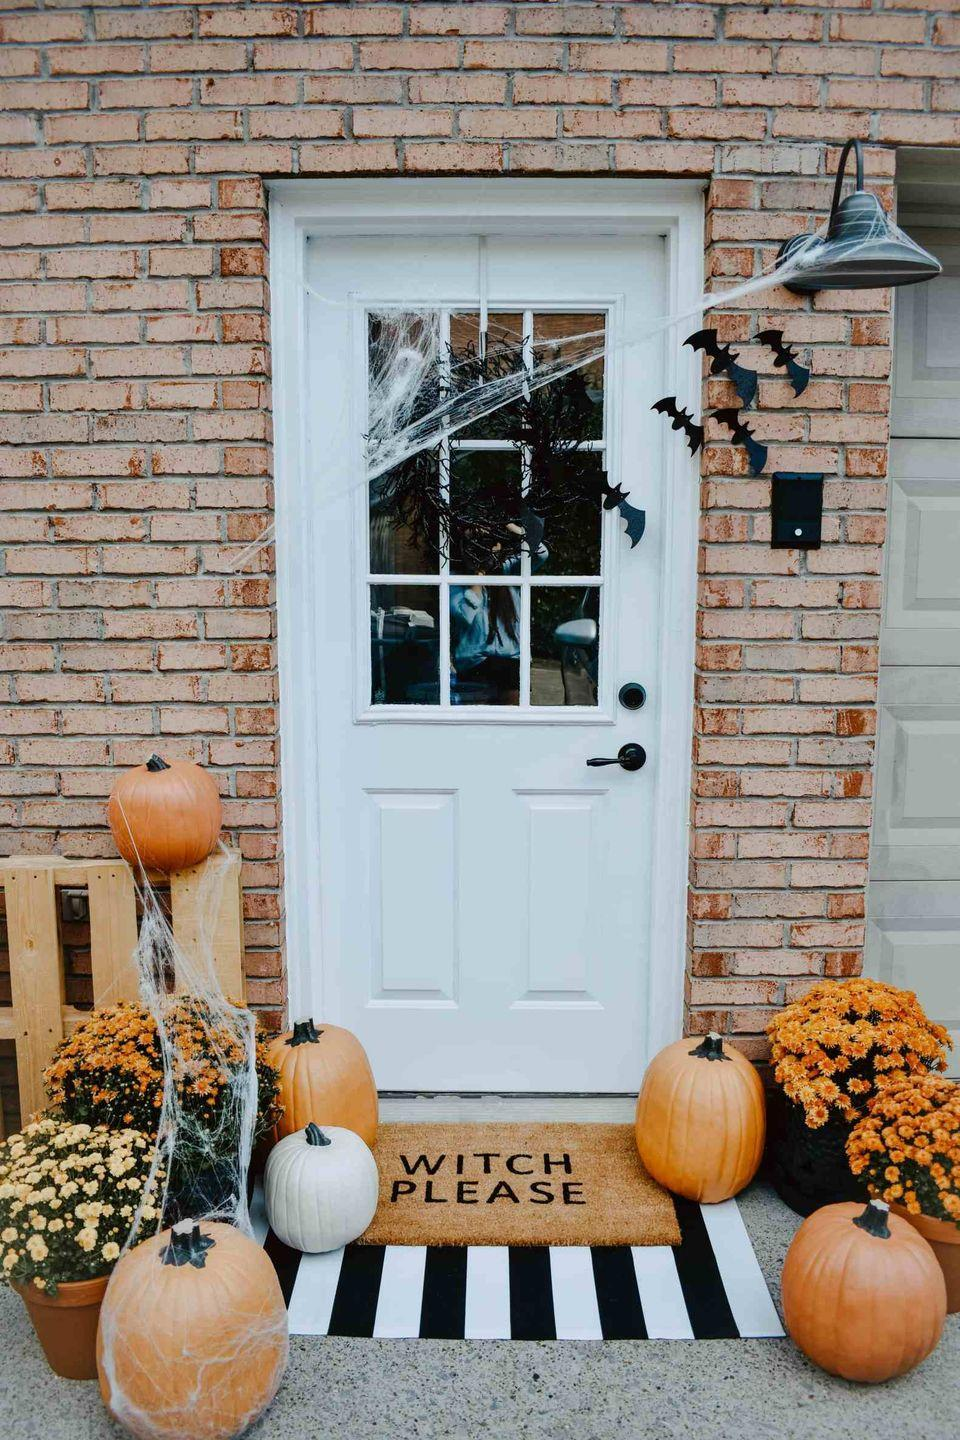 """<p>Sometimes the best way to display your pumpkins is with other head-turning Halloween décor. After all, how cute is this """"Witch Please"""" set up?</p><p><strong>See more at <a href=""""https://www.houseonlongwoodlane.com/home-renovation/diy-halloween-door-mat-front-porch/"""" rel=""""nofollow noopener"""" target=""""_blank"""" data-ylk=""""slk:The House On Longwood Lane"""" class=""""link rapid-noclick-resp"""">The House On Longwood Lane</a>. </strong></p><p><a class=""""link rapid-noclick-resp"""" href=""""https://www.amazon.com/NANTA-Striped-Washable-Outdoor-Farmhouse/dp/B07XJZH6WX?tag=syn-yahoo-20&ascsubtag=%5Bartid%7C2164.g.36877187%5Bsrc%7Cyahoo-us"""" rel=""""nofollow noopener"""" target=""""_blank"""" data-ylk=""""slk:SHOP BLACK AND WHITE DOORMATS"""">SHOP BLACK AND WHITE DOORMATS</a></p>"""